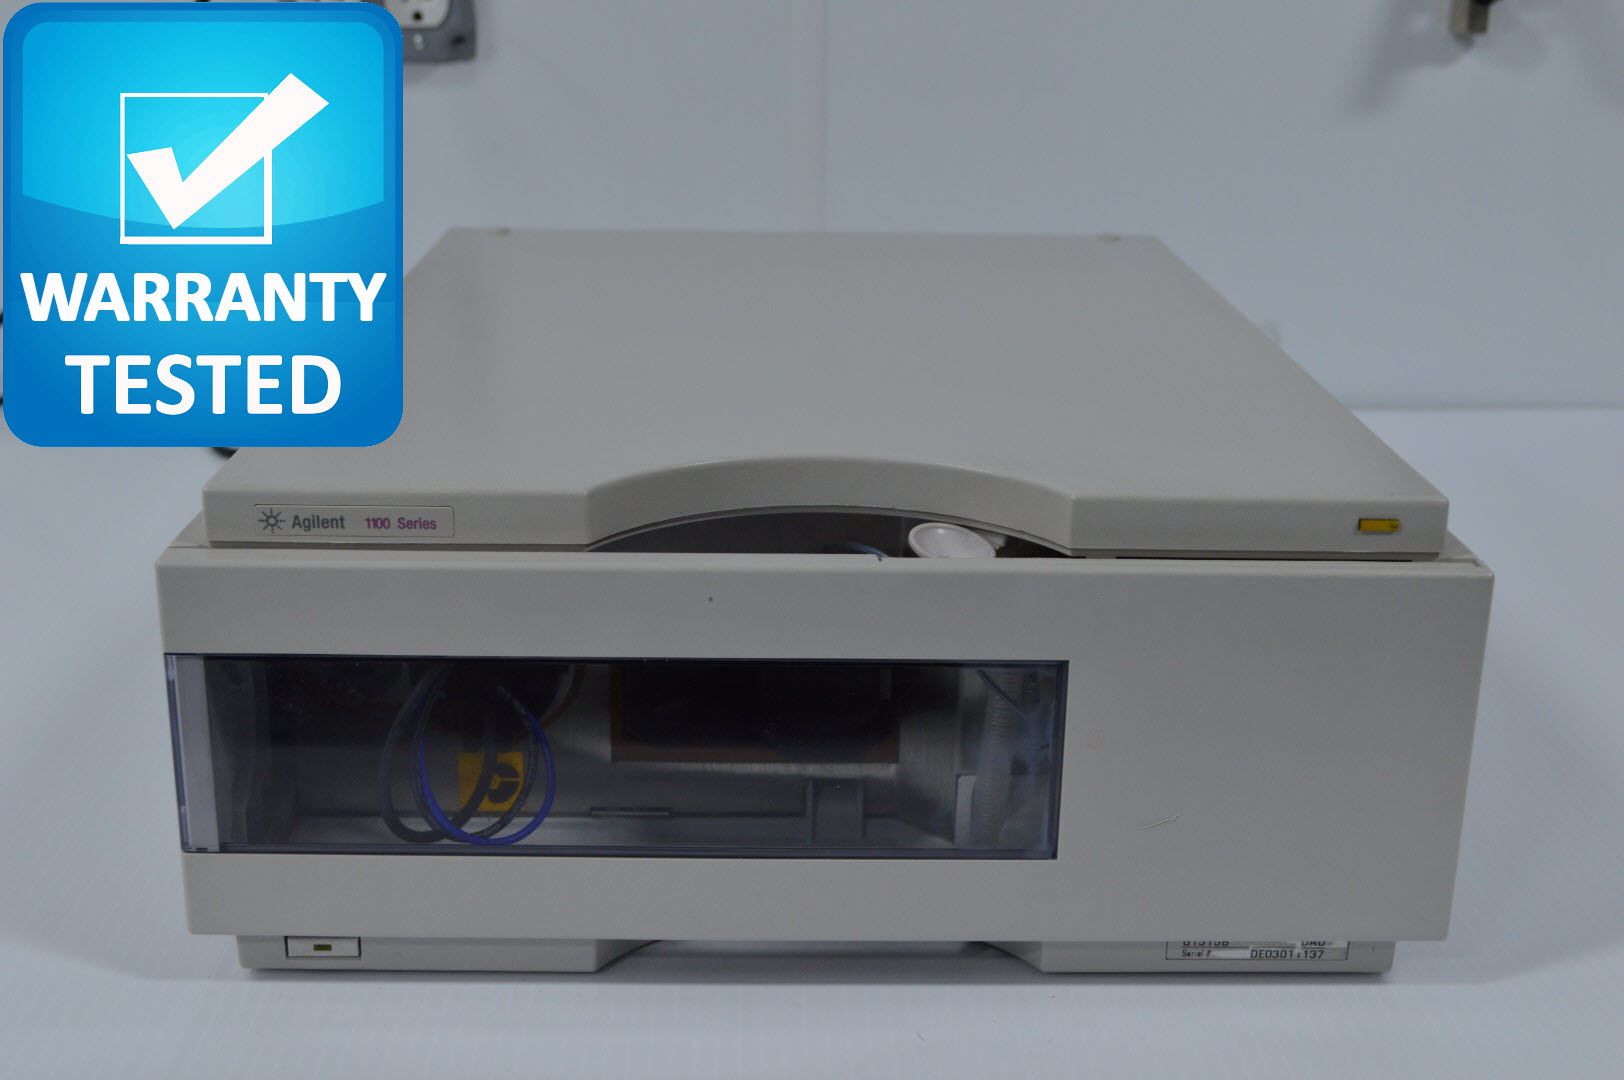 Agilent DAD G1315B HPLC Diode Array Detector